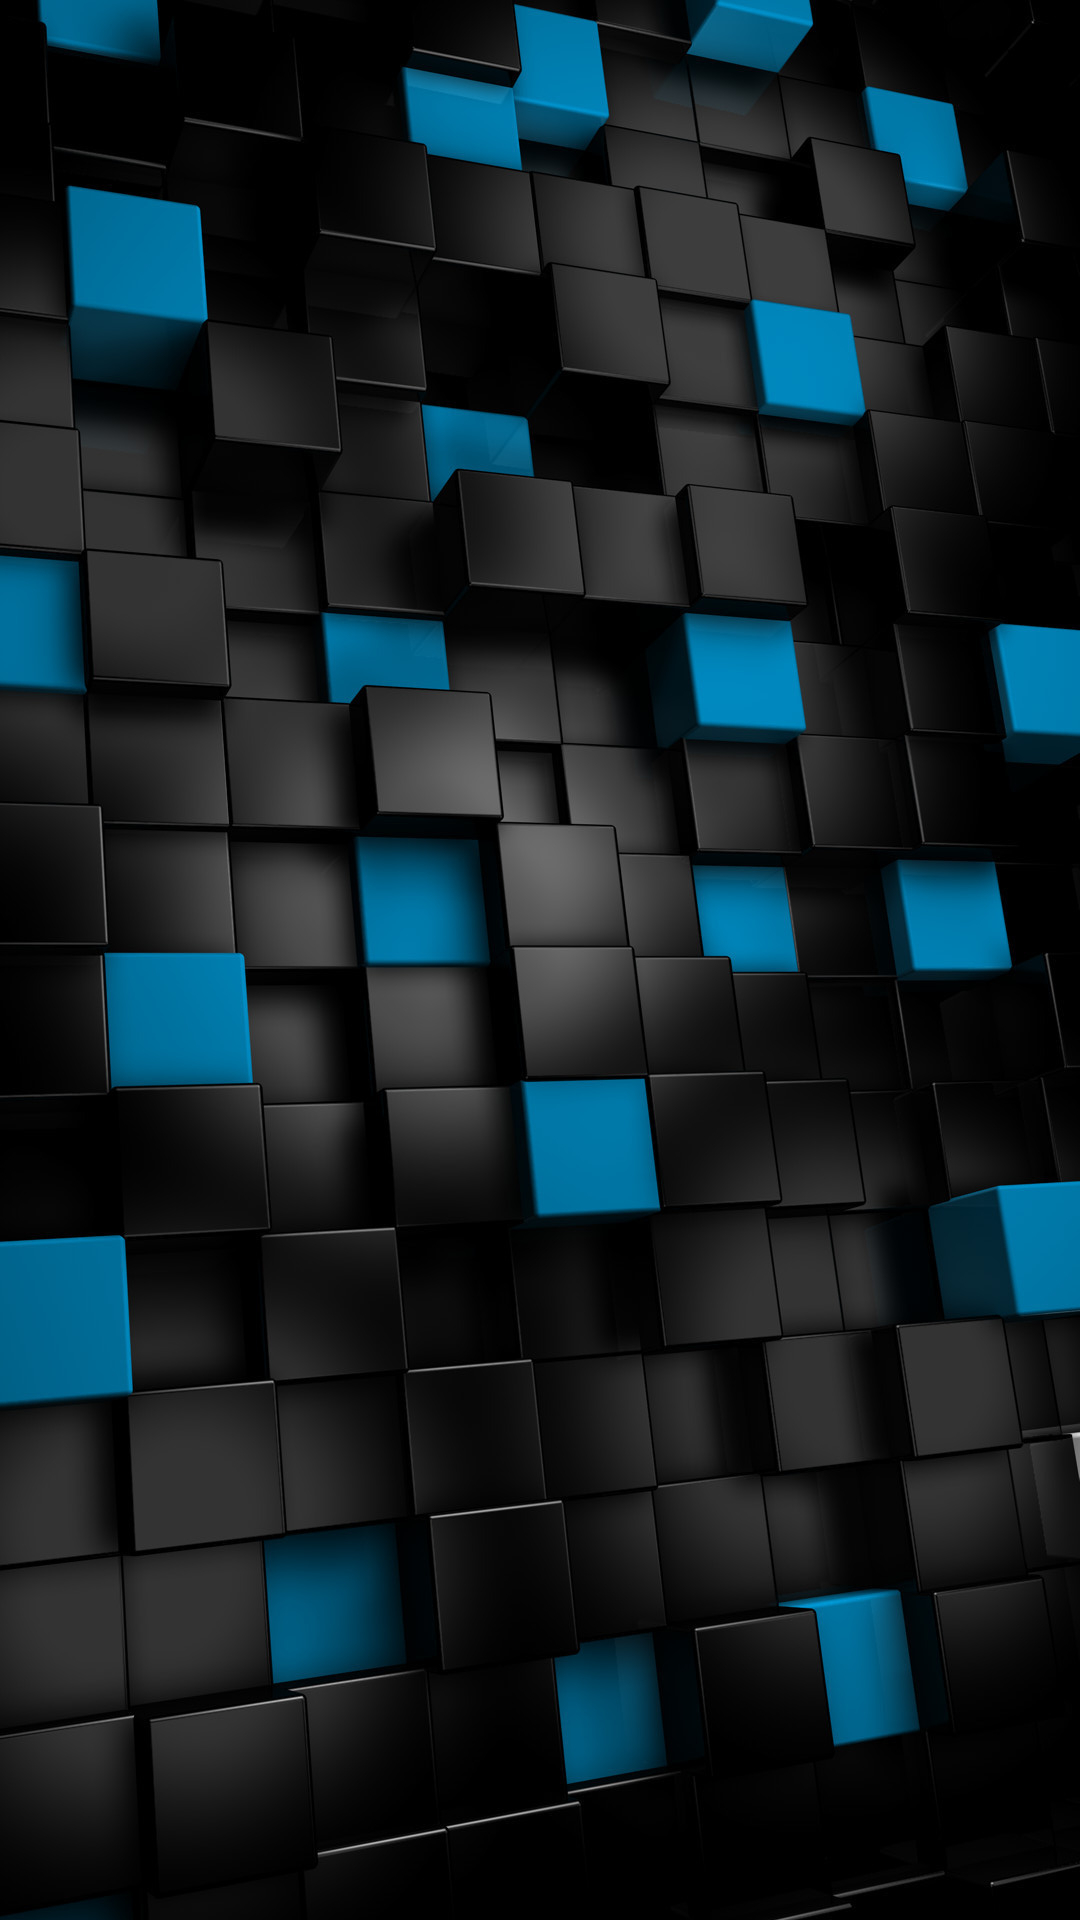 Abstract Black Cubes Htc One Wallpaper Best Htc One Wallpapers Free And Easy To Download